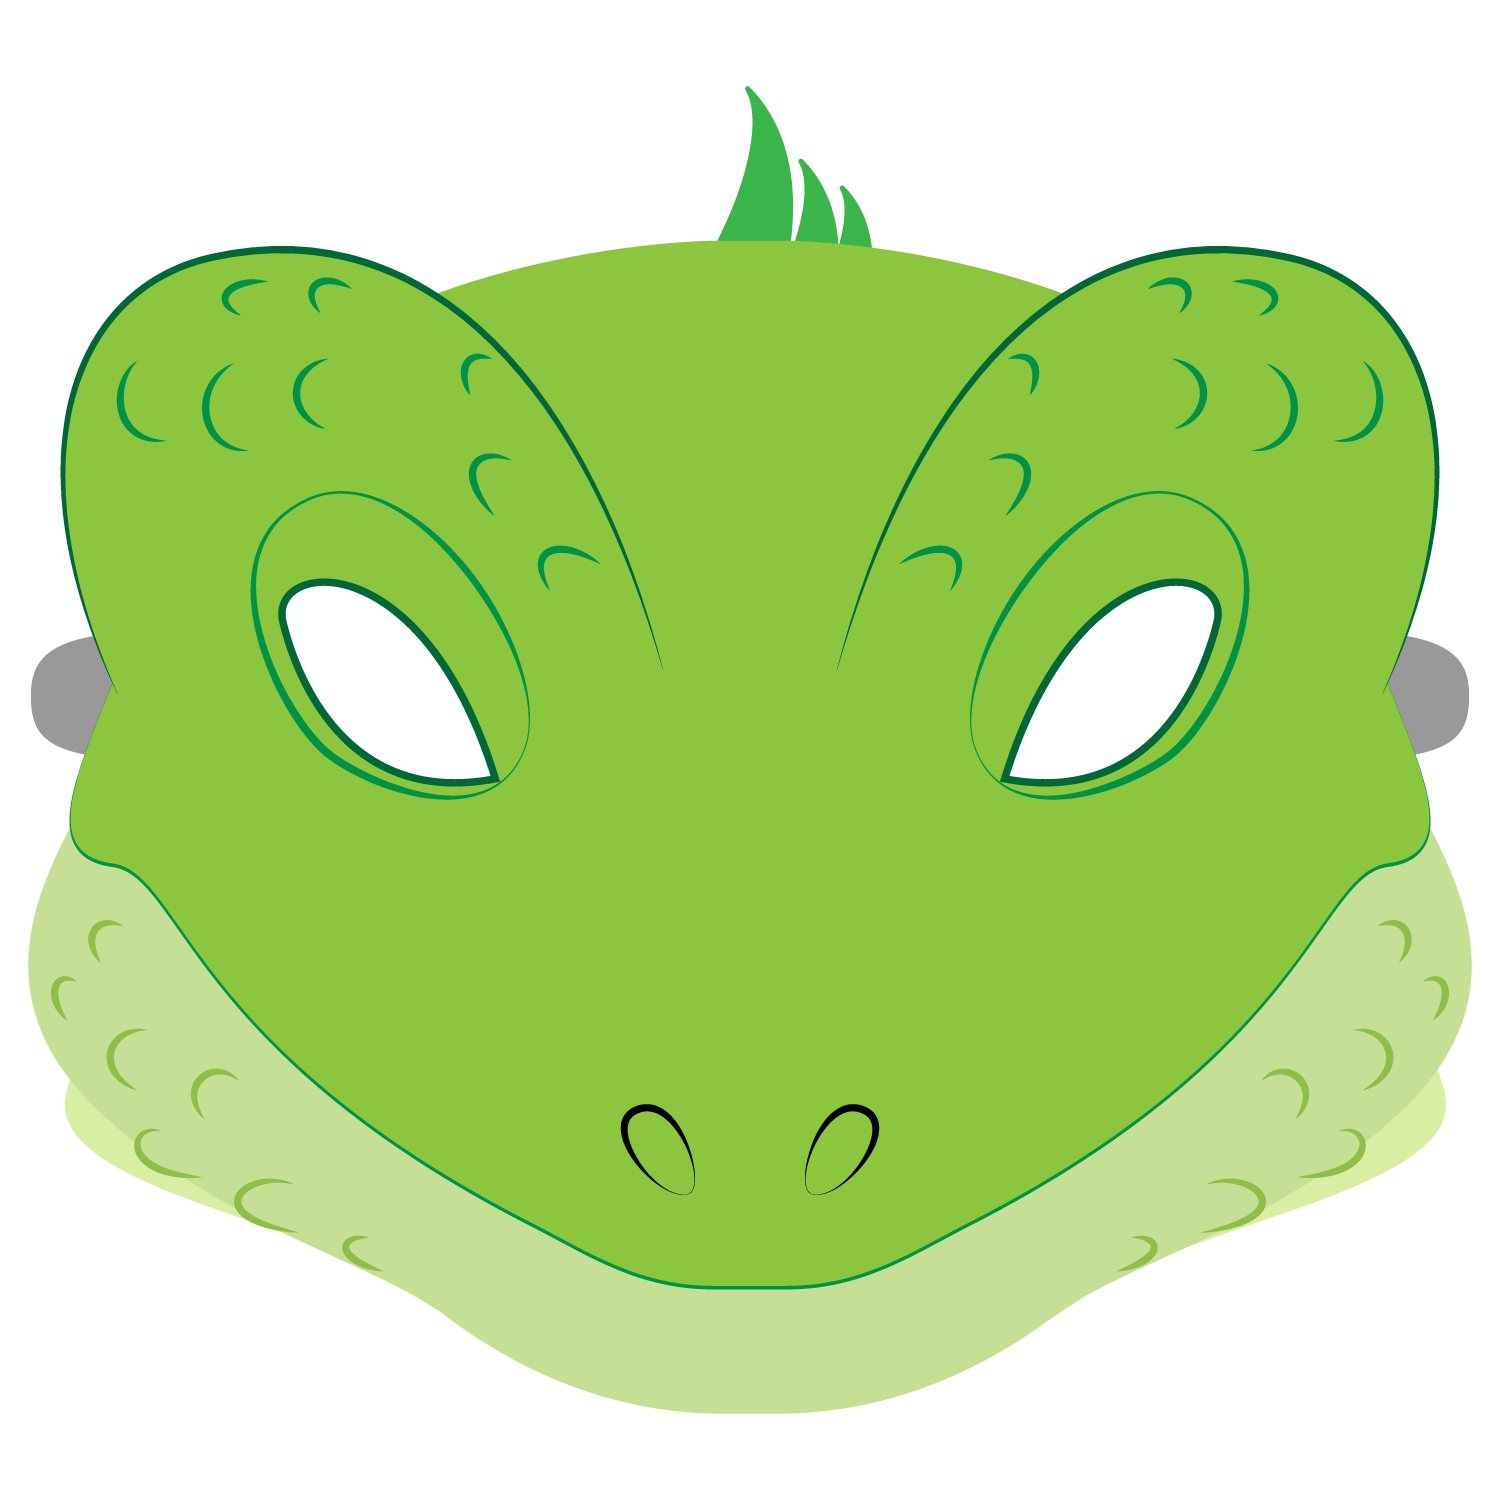 Lizard Mask Template | Free Printable Papercraft Templates - Free Printable Lizard Mask